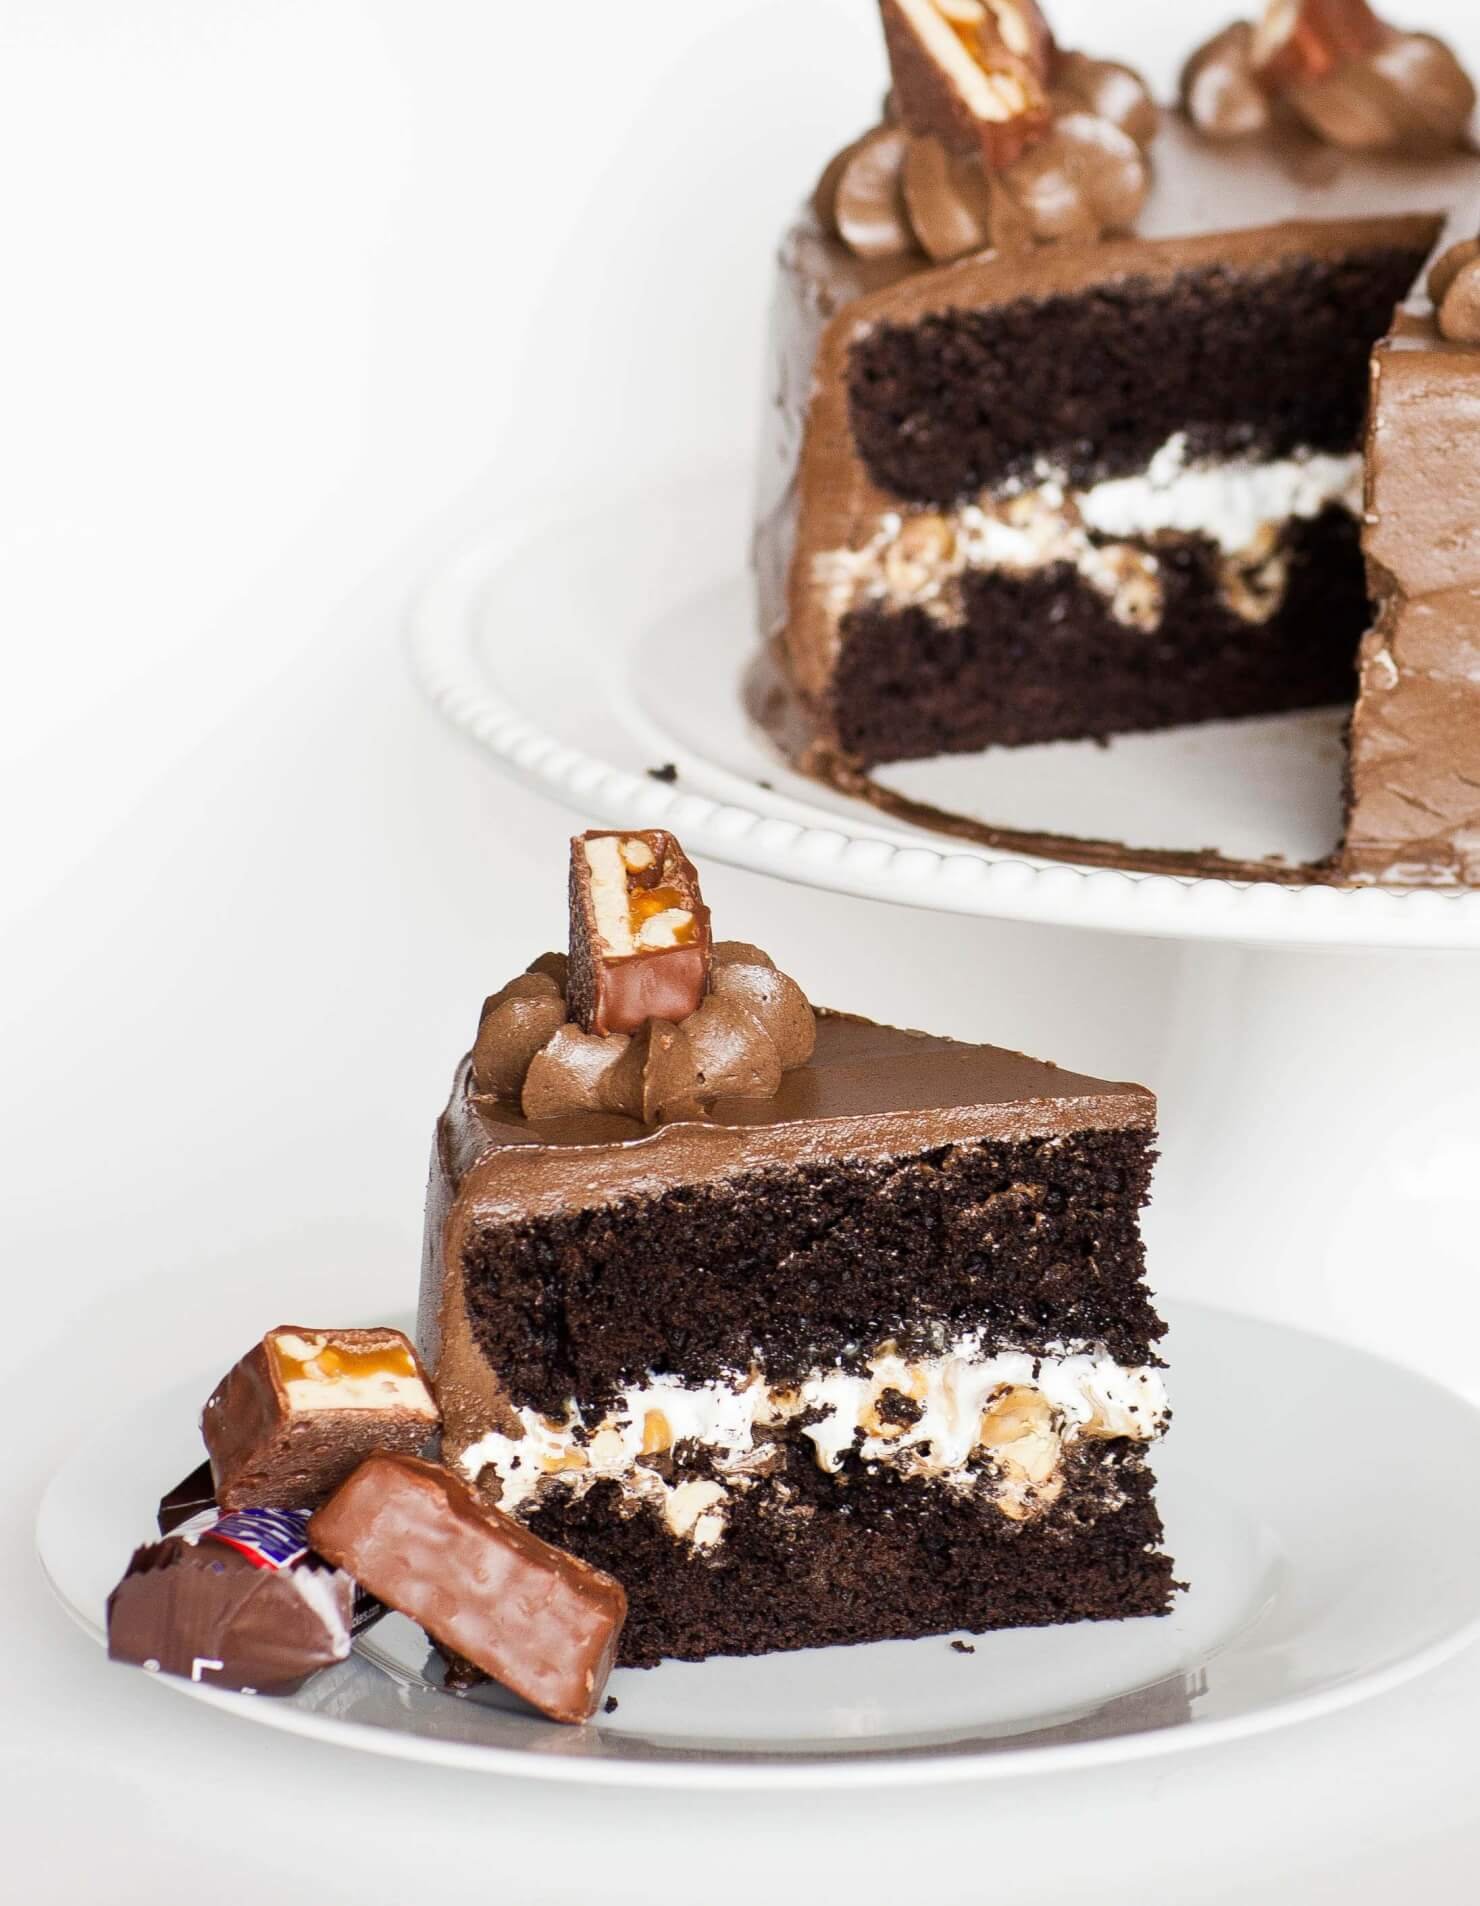 Snickers chocolate cake with peanut filling